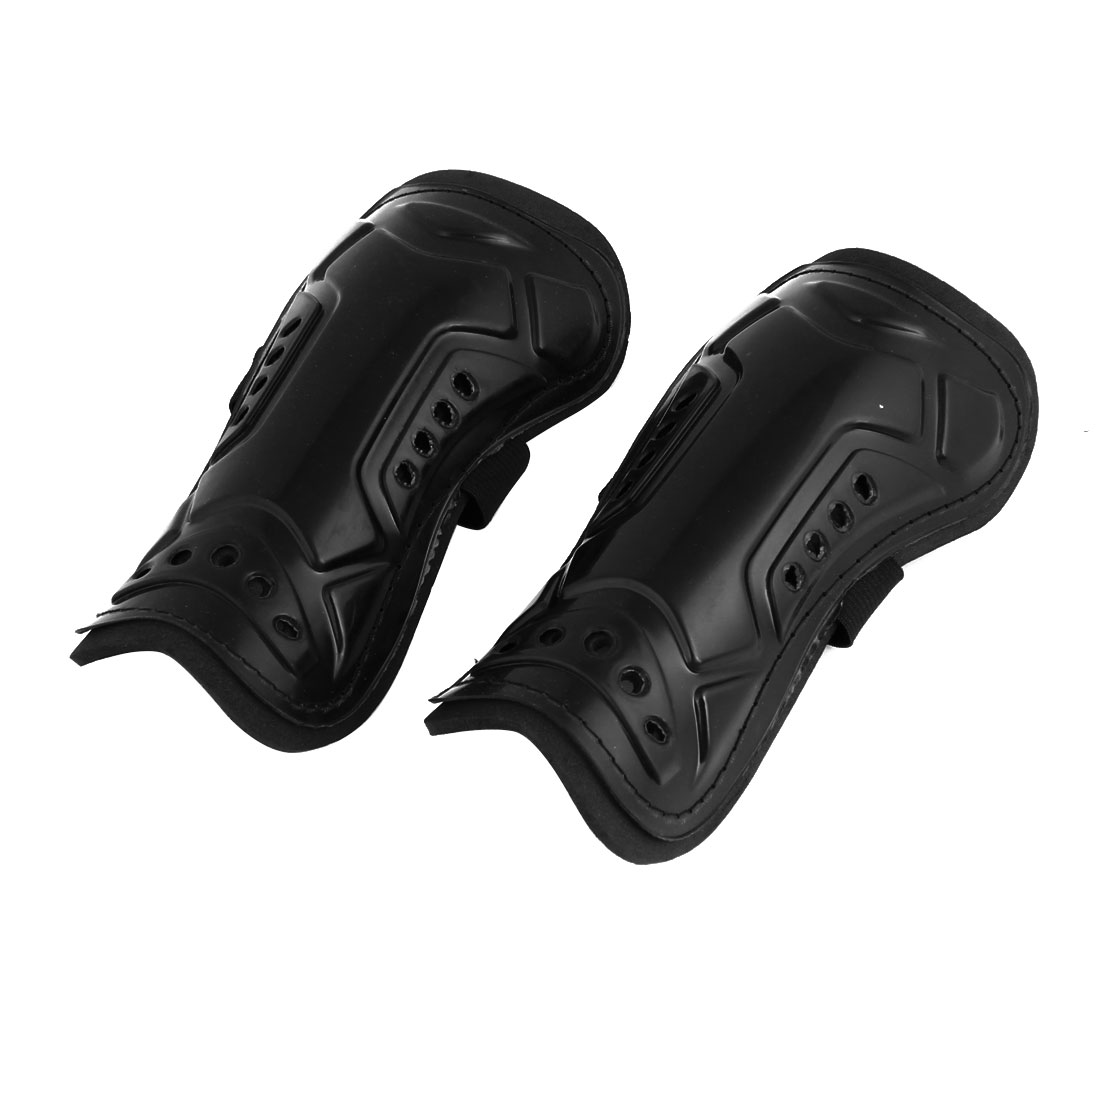 Elastic Band Hook Loop Calf Protector Shin Guard Support Black Pair